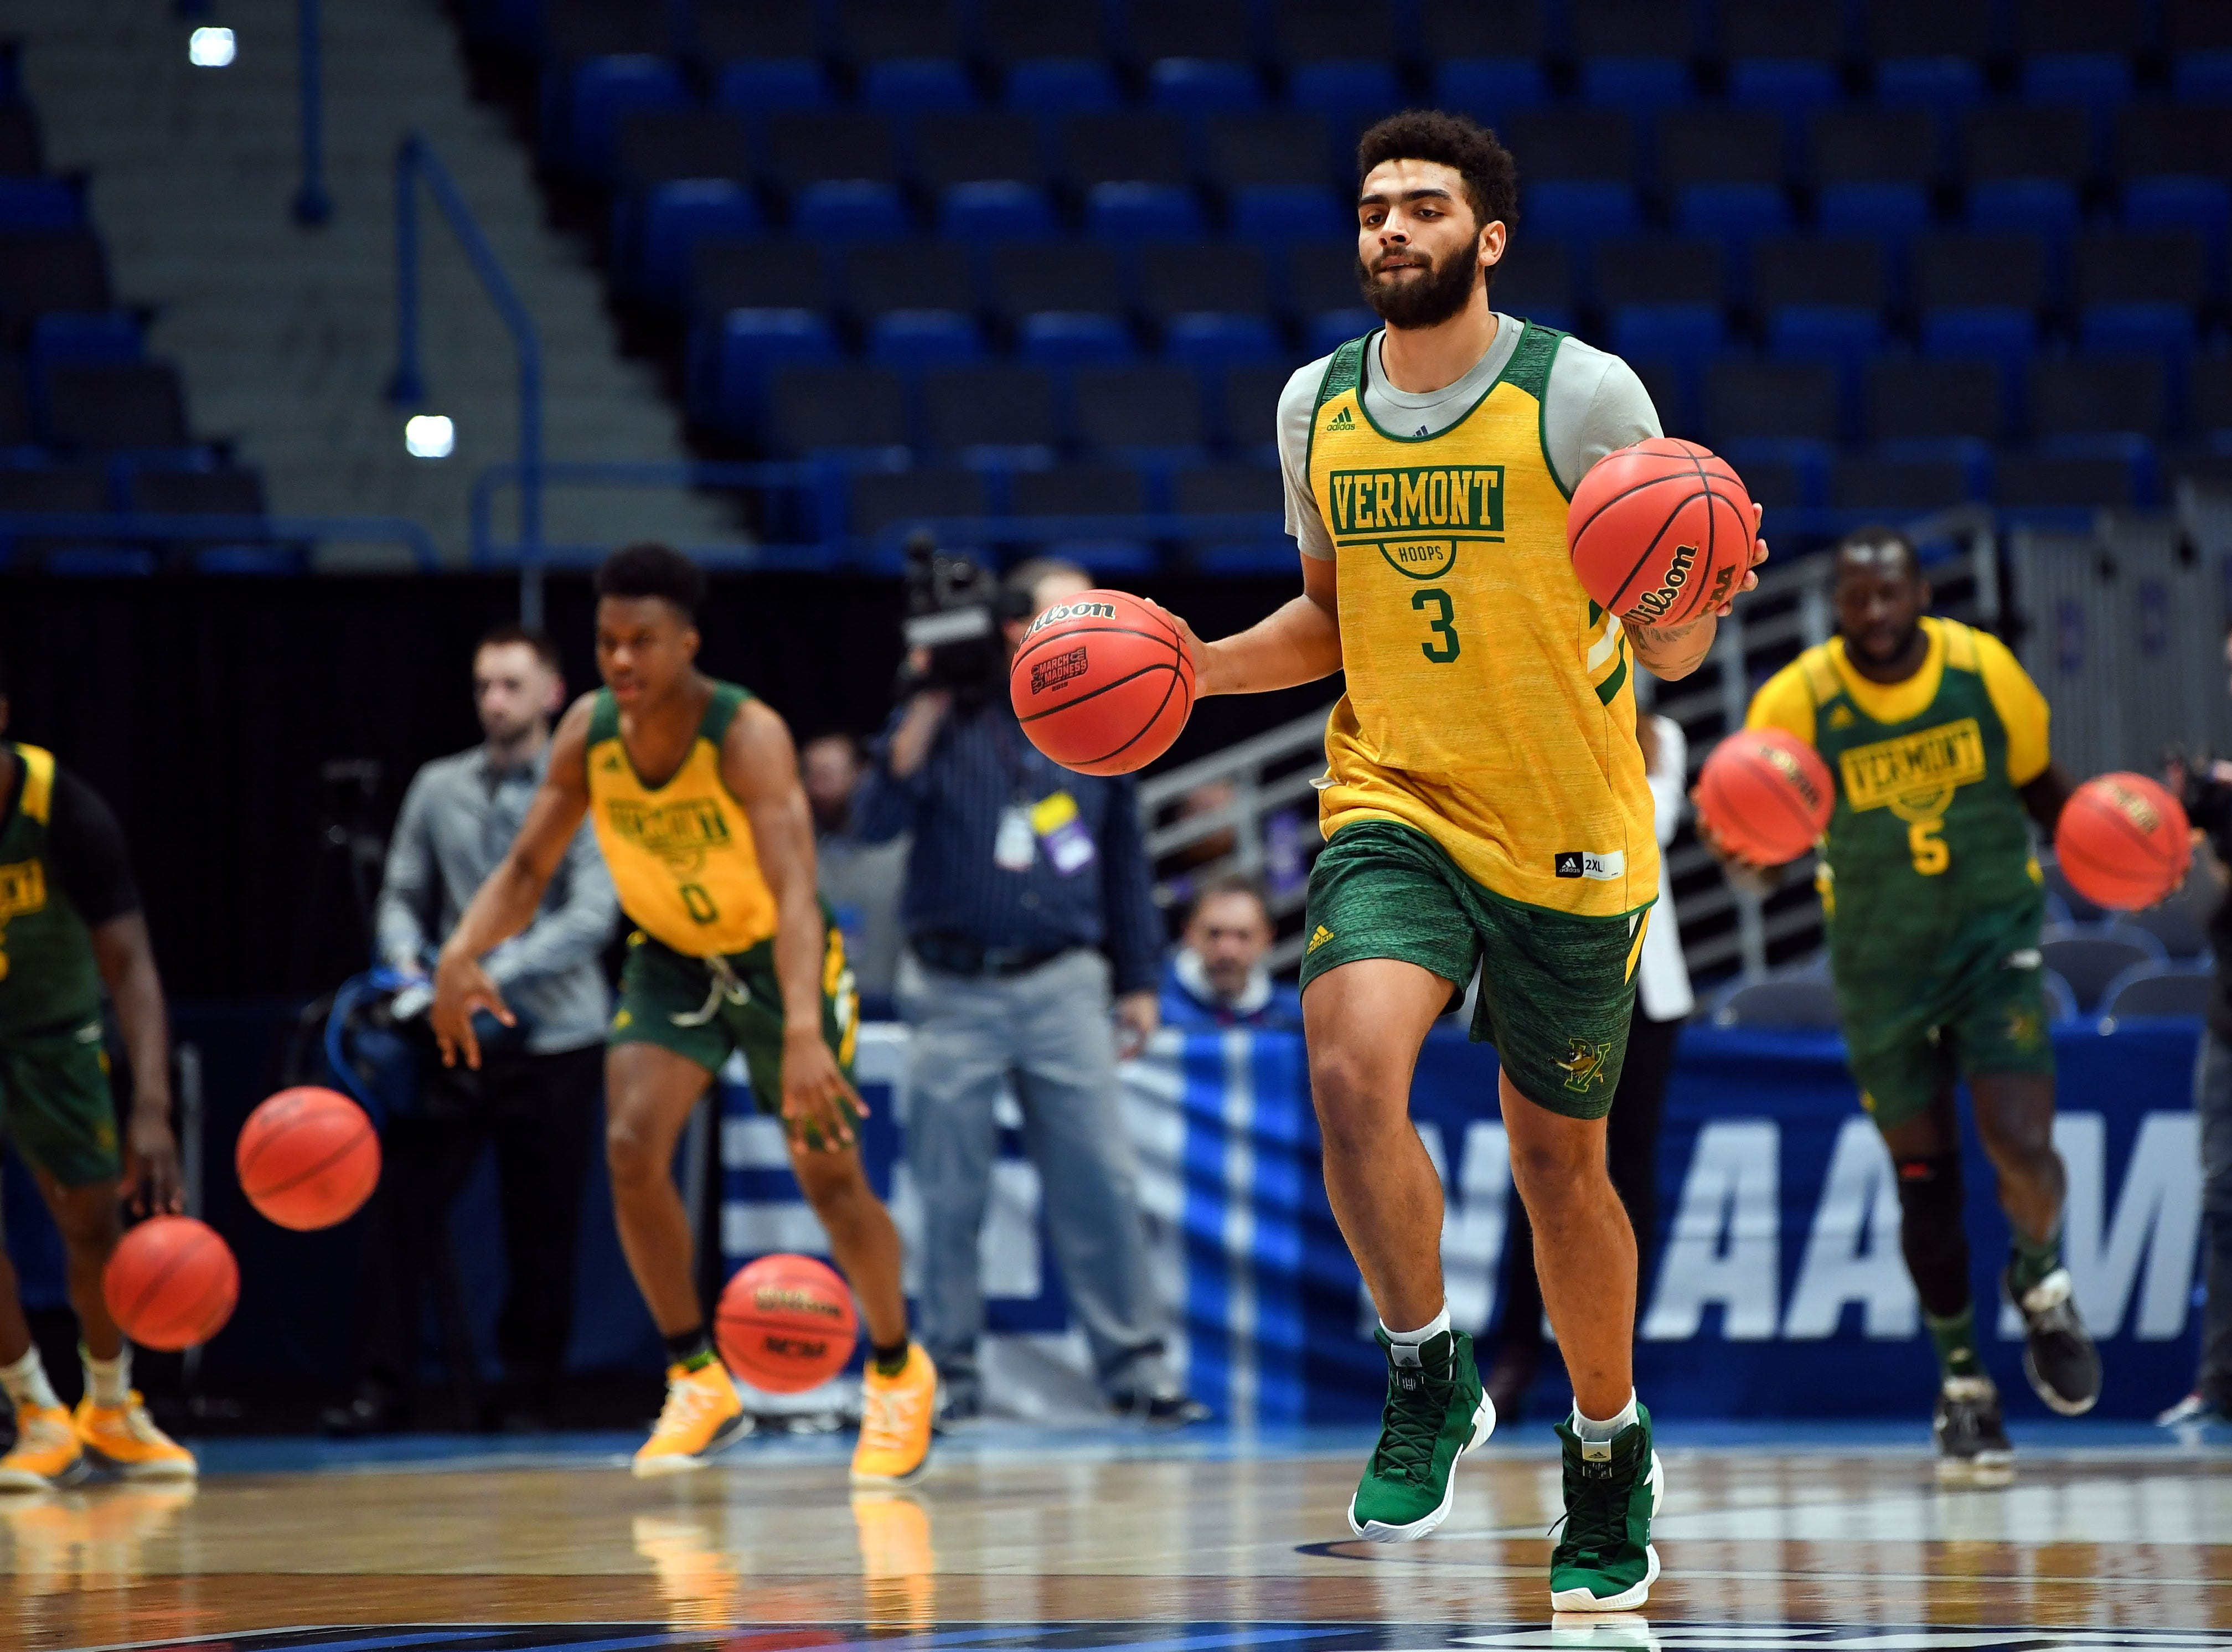 Mar 20, 2019; Hartford, CT, USA; Vermont Catamounts forward Anthony Lamb (3) dribbles the ball during practice before the first round of the 2019 NCAA Tournament at XL Center. Mandatory Credit: Robert Deutsch-USA TODAY Sports